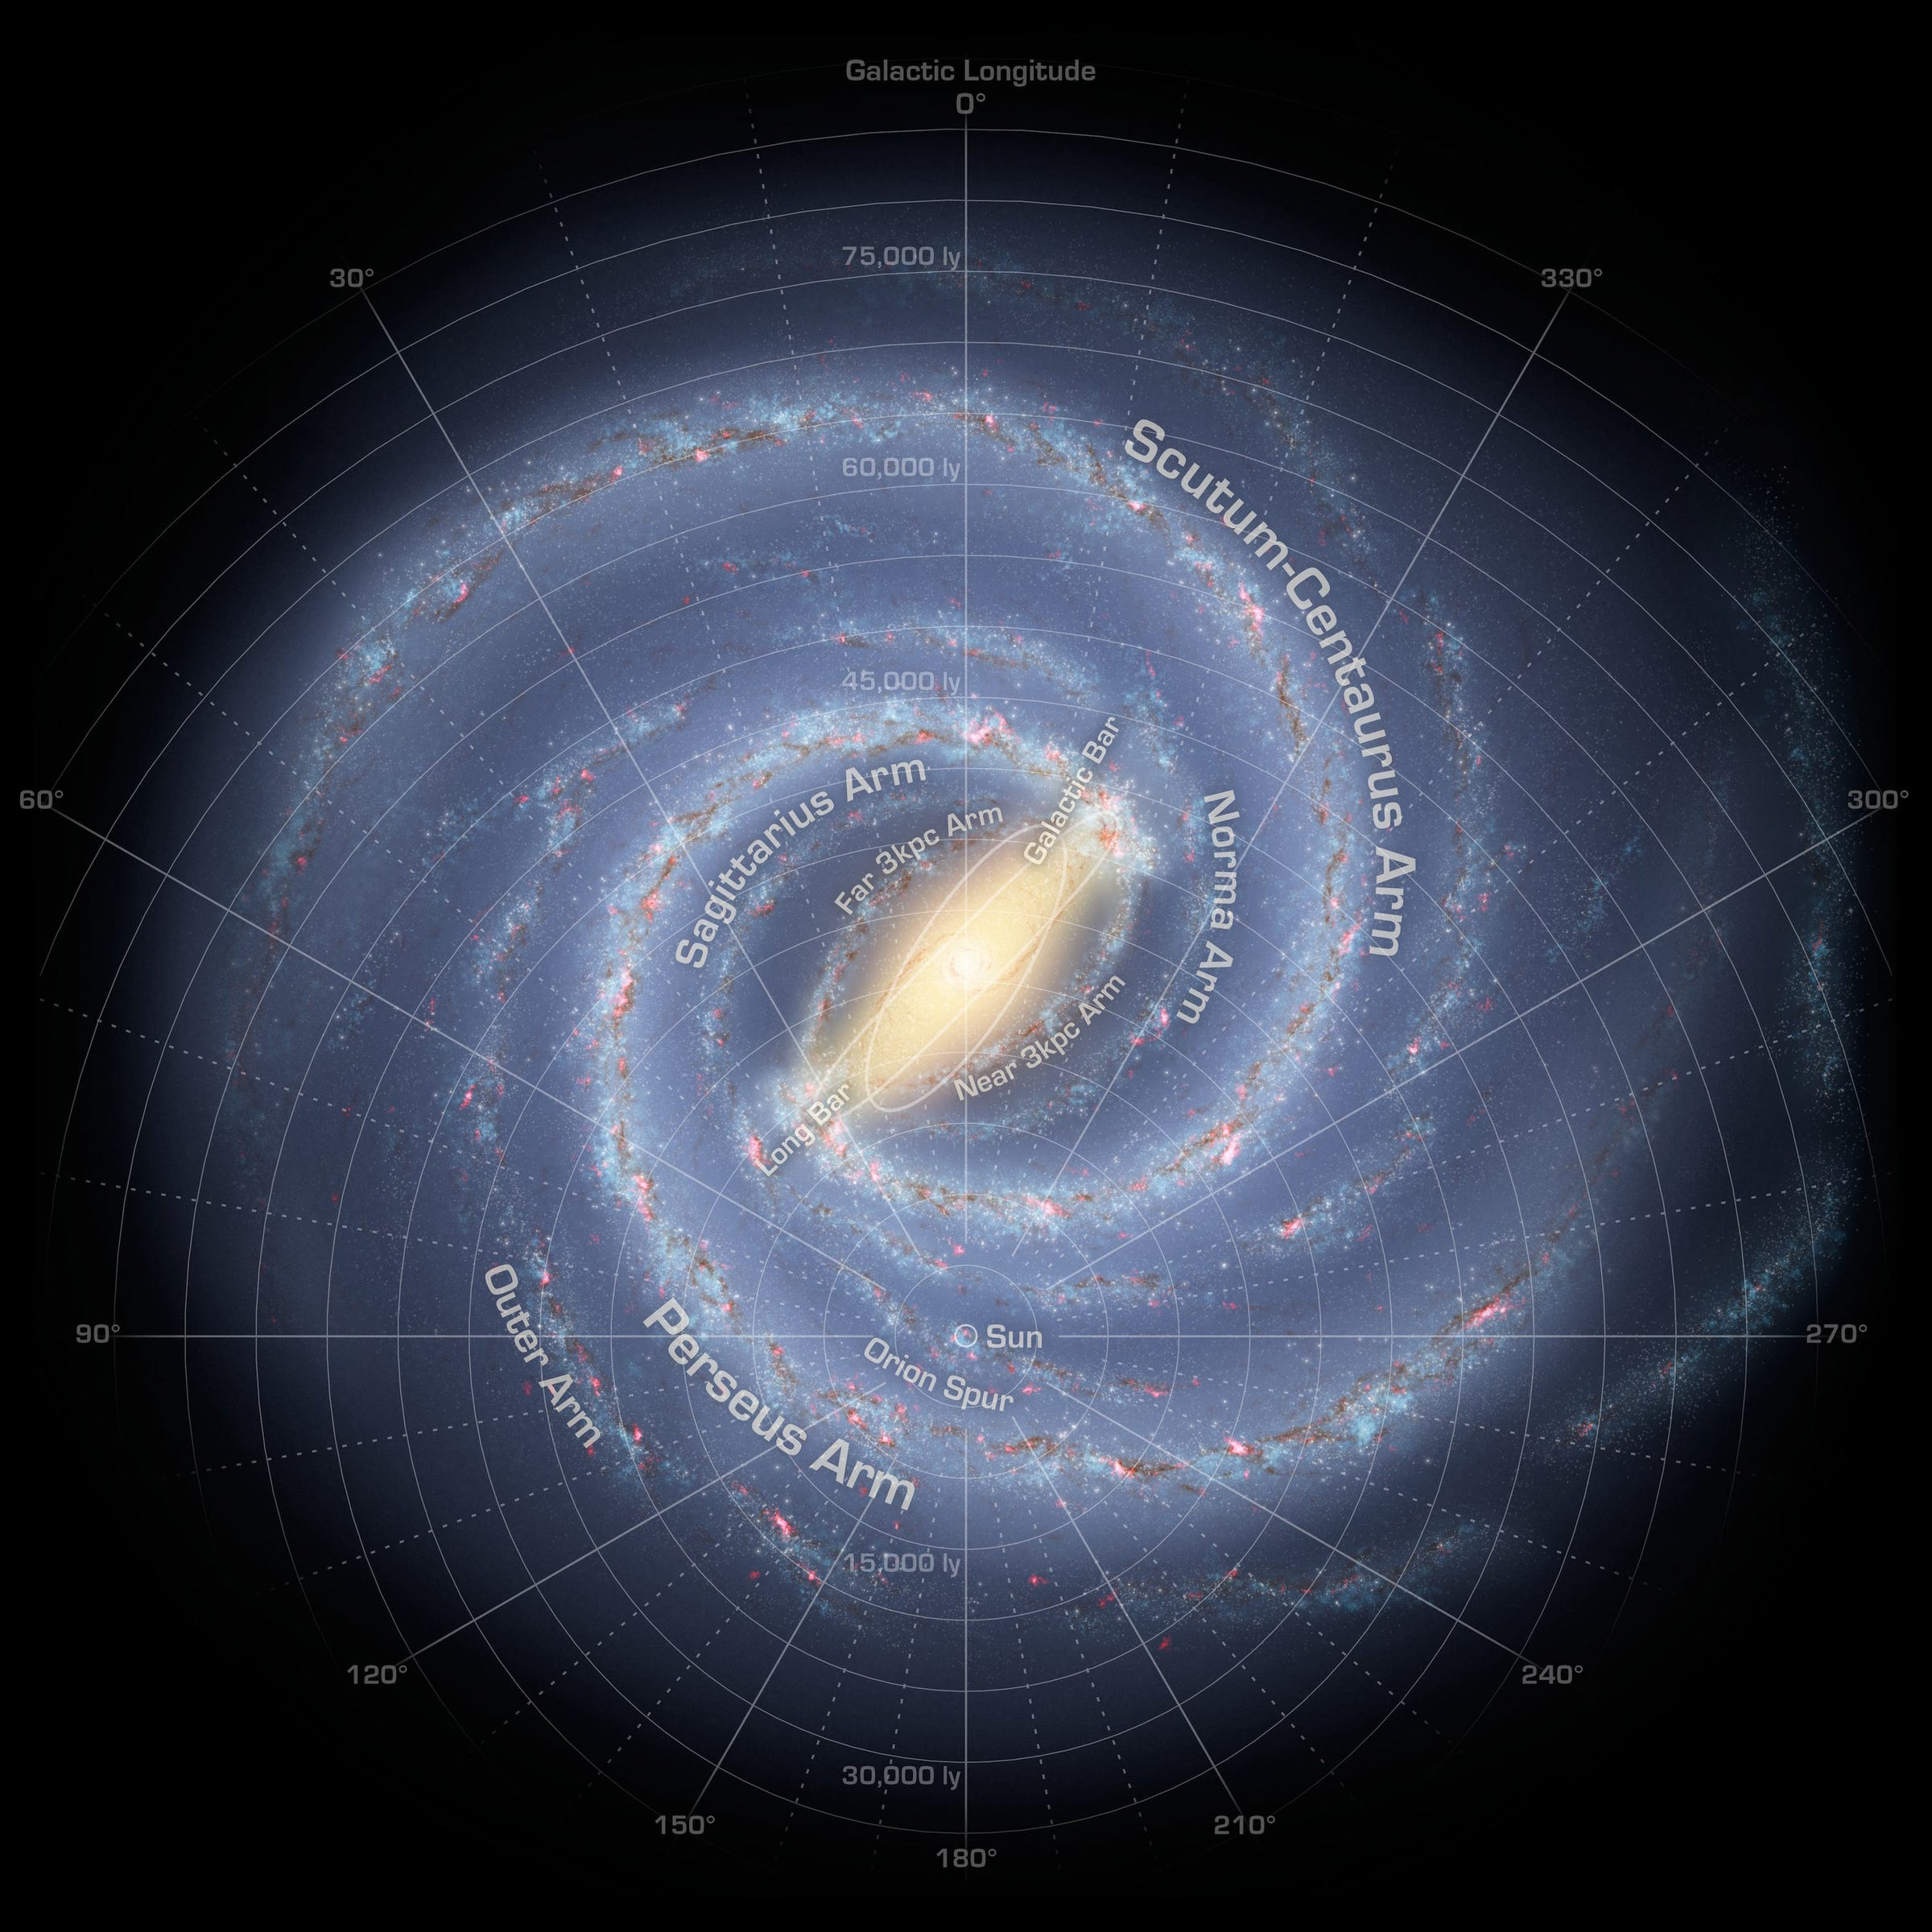 Here's what the Milky Way may look like from deep space ...